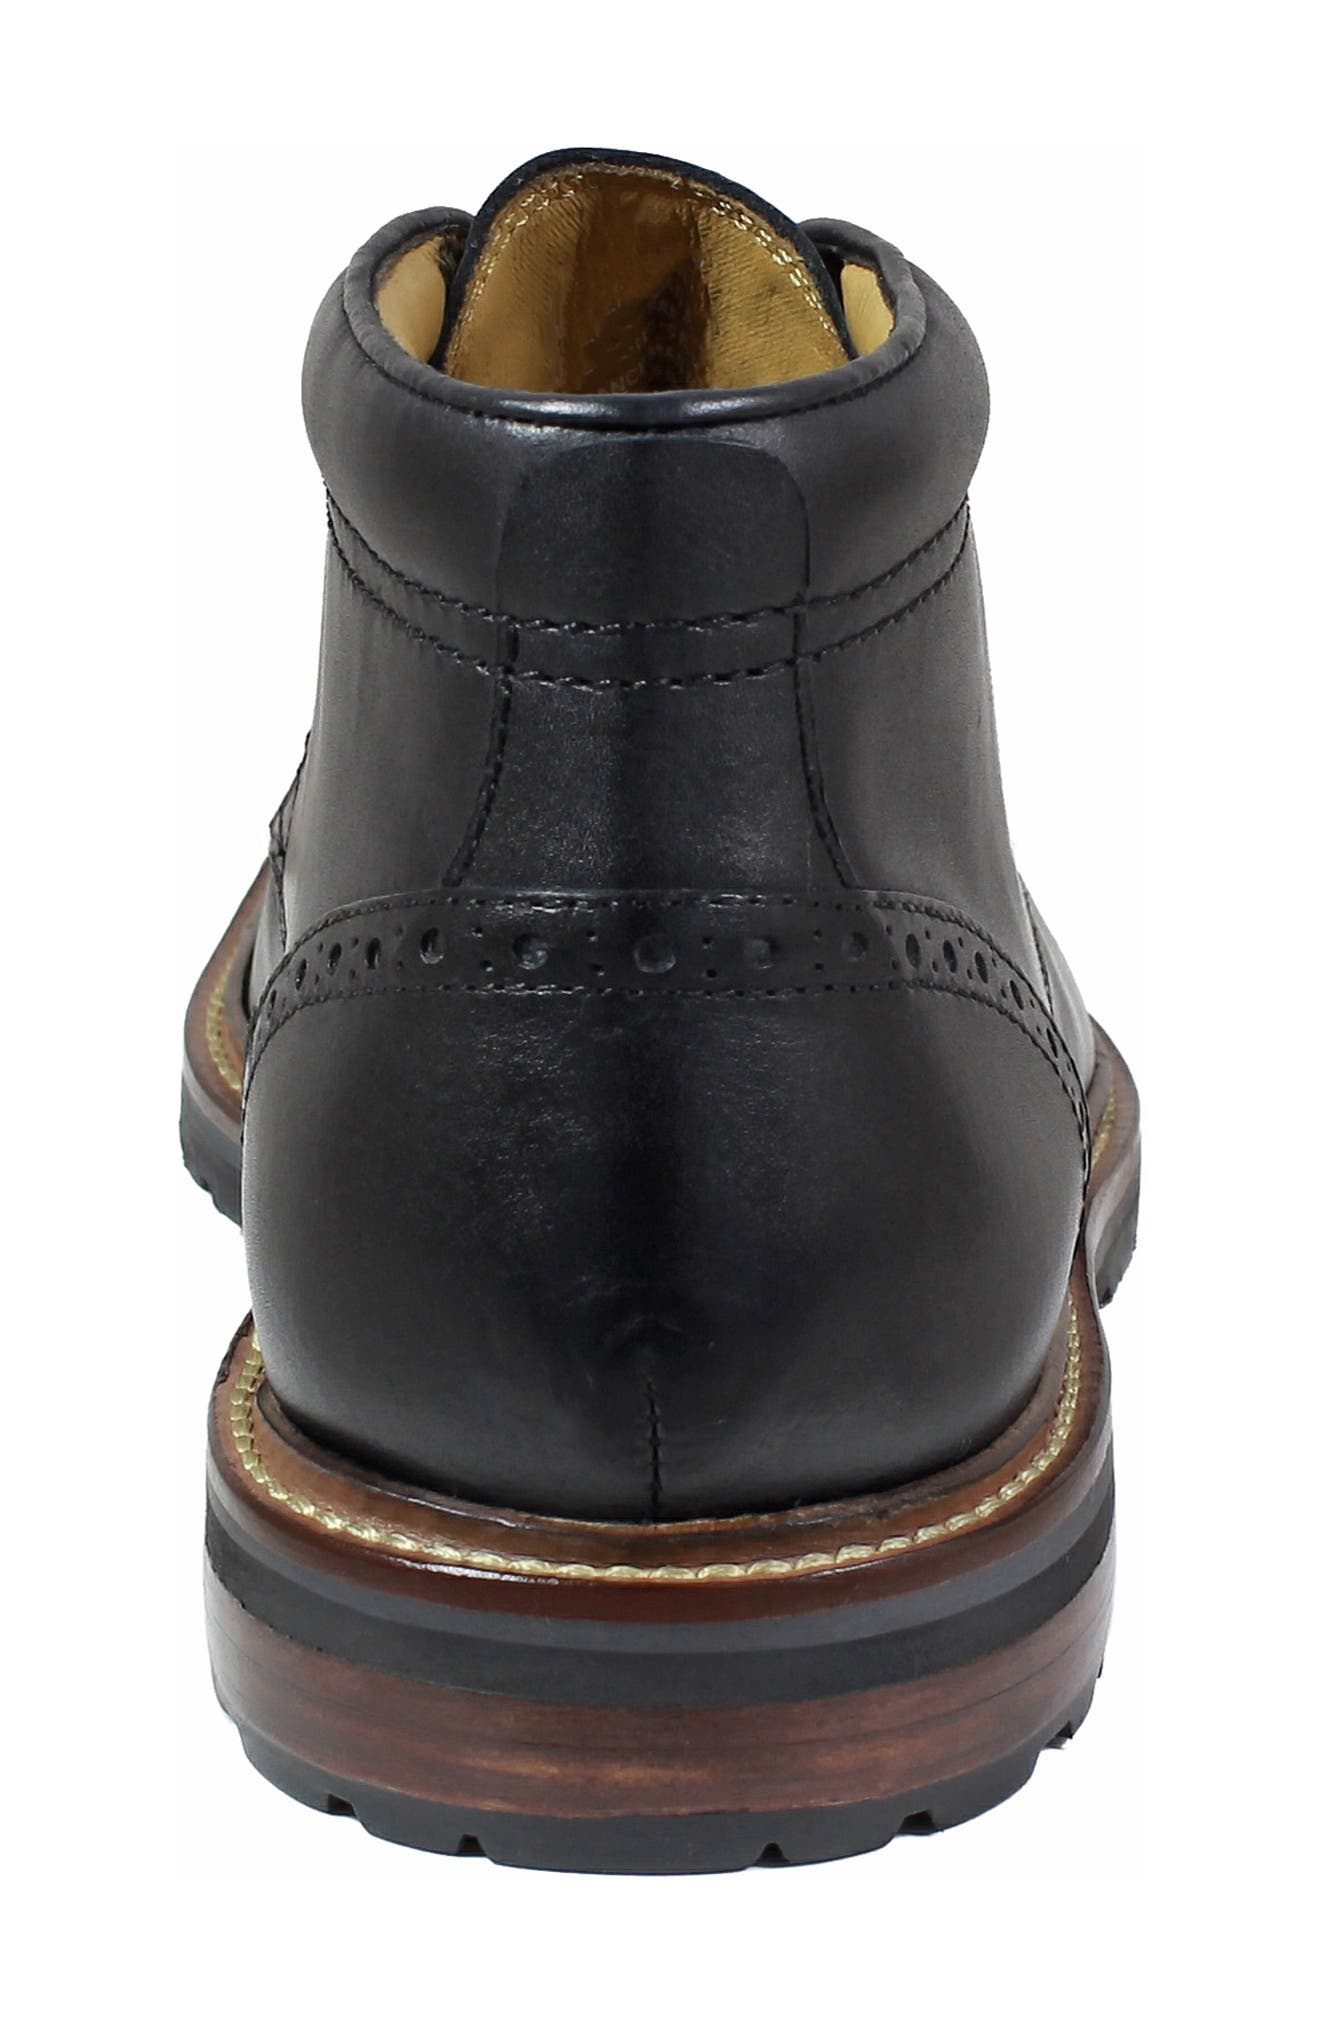 Estabrook Lugged Chukka Boot,                             Alternate thumbnail 7, color,                             BLACK LEATHER